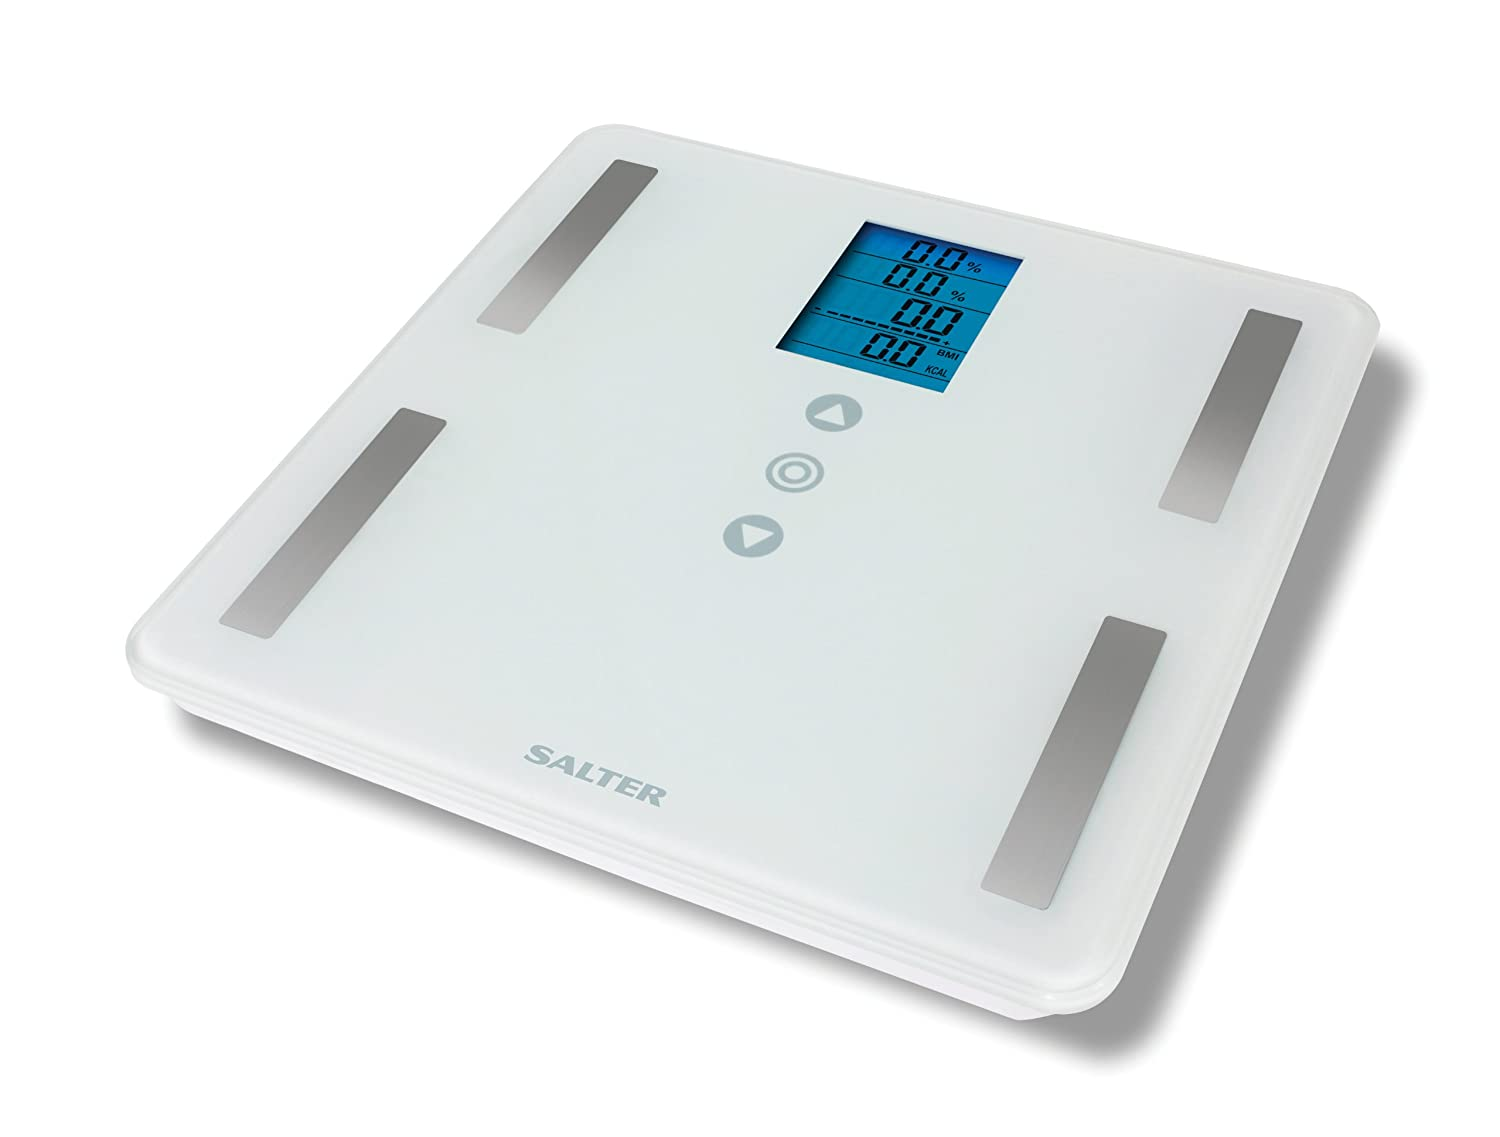 Salter Touch Body Fat Analyser Scale Amazon Kitchen Home